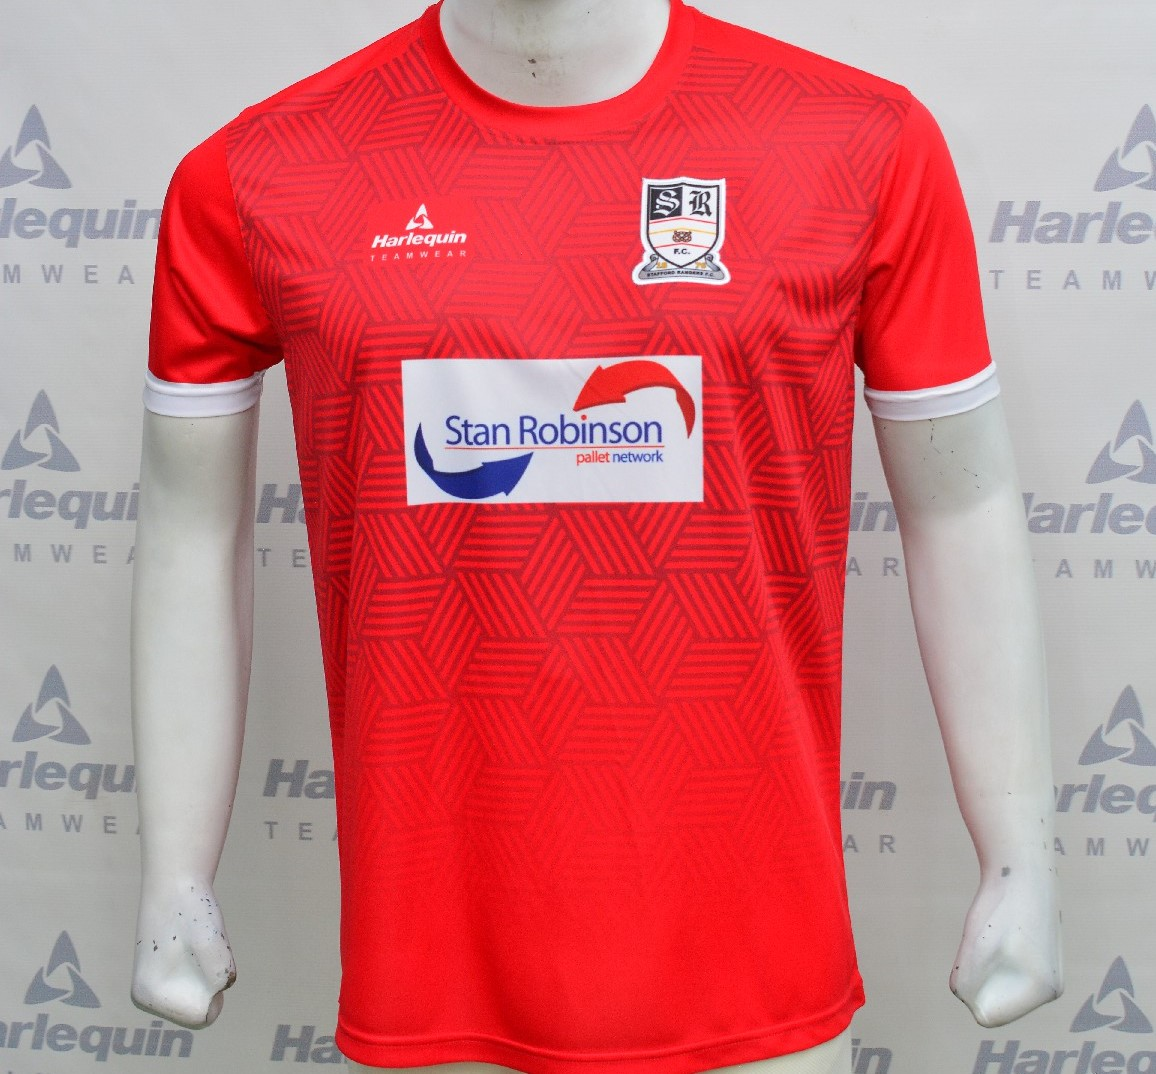 2020 Stafford Rangers Away Shirt (Youth)